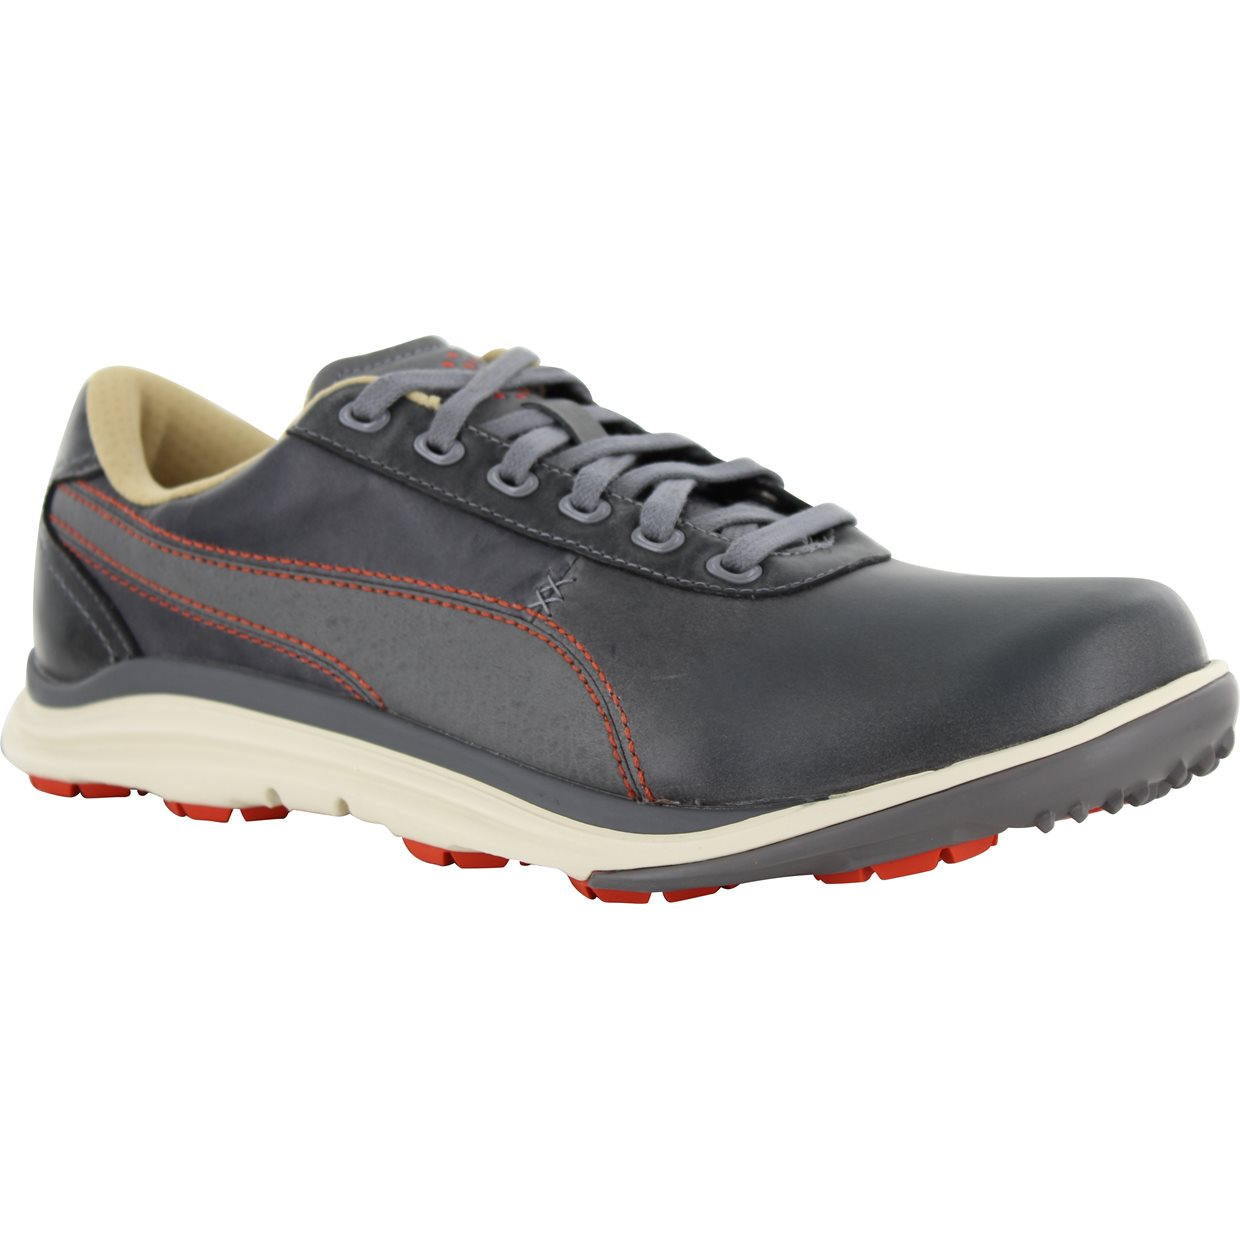 Biodrive Leather Spikeless Golf Shoes